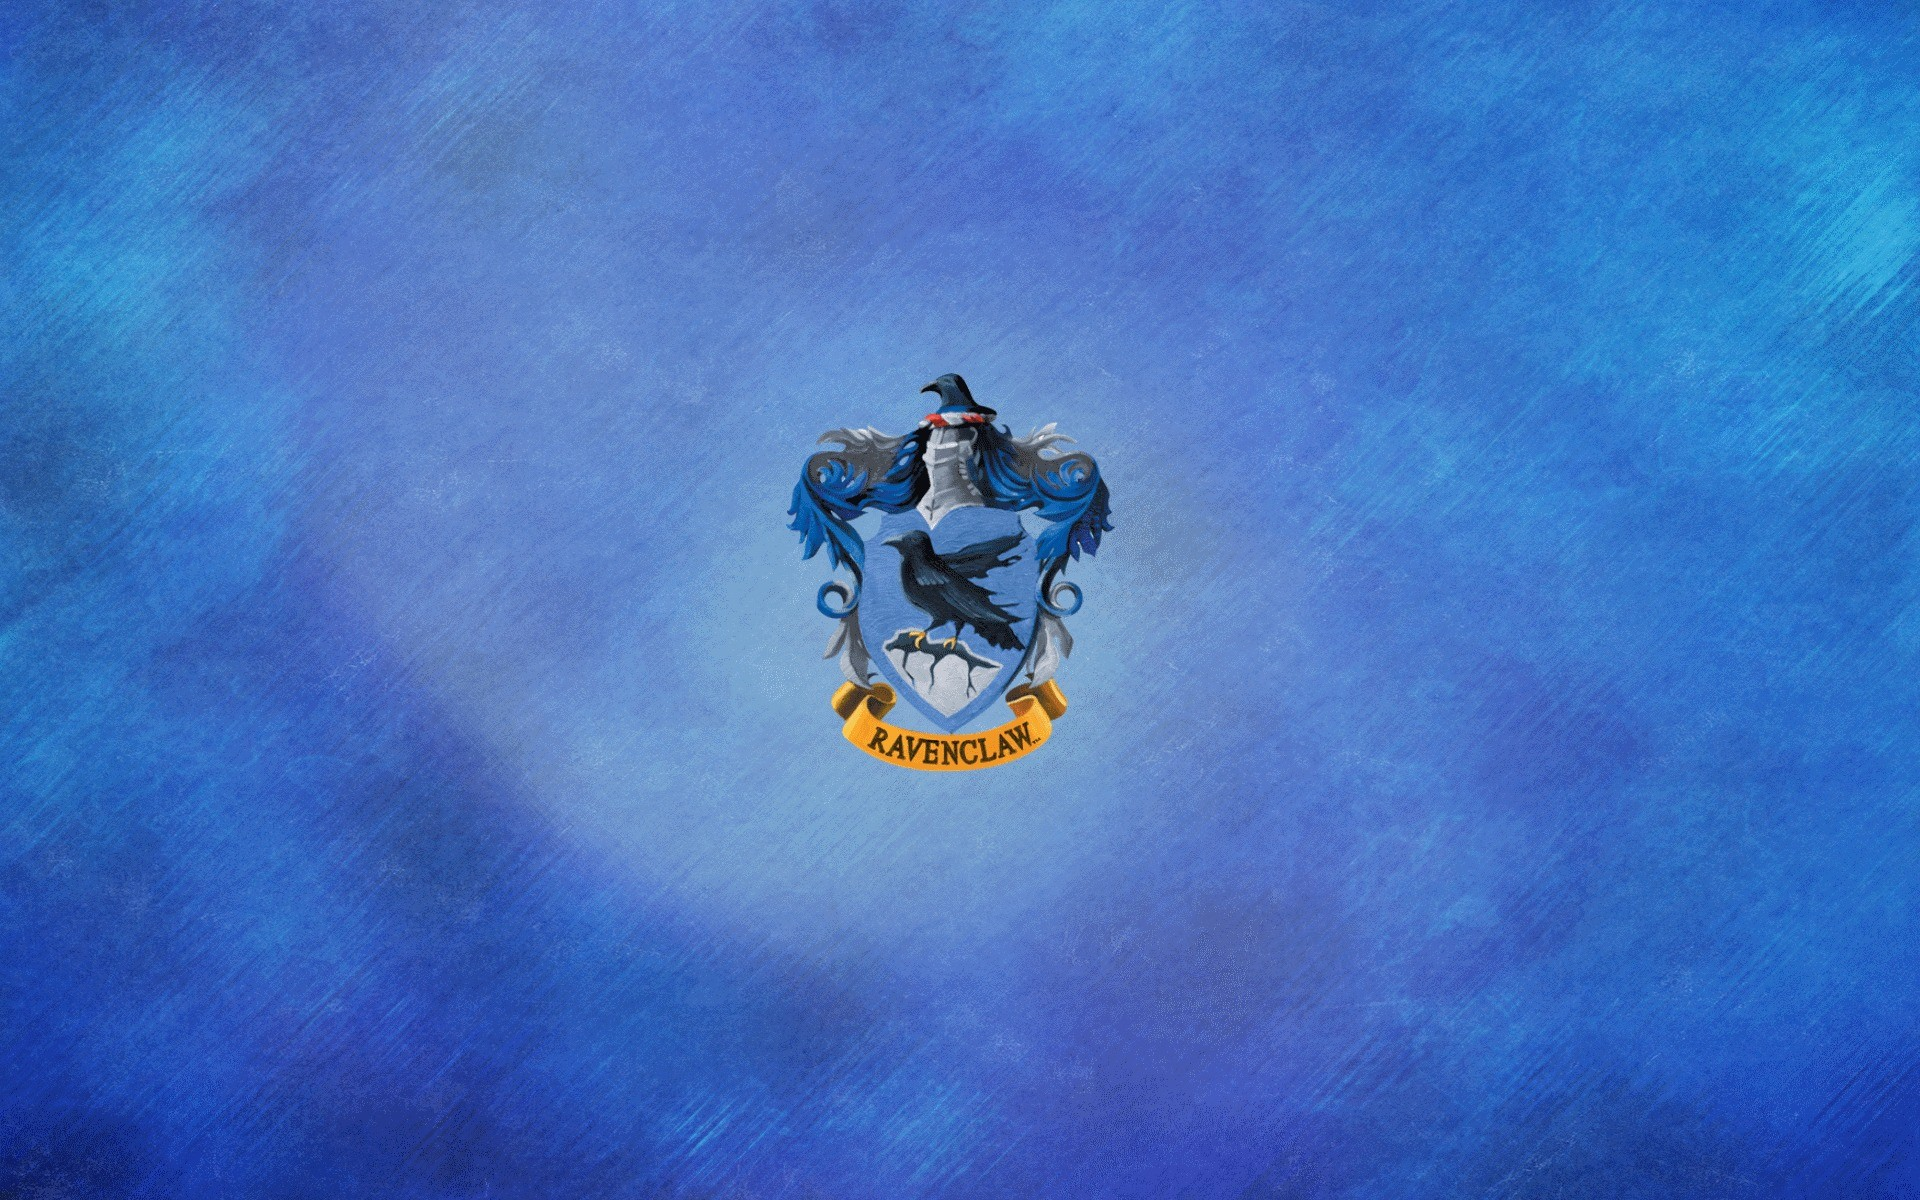 1920x1200 Wallpaper garry potter ravenclaw kulturen wallpaper 1920x1080 1680x1050